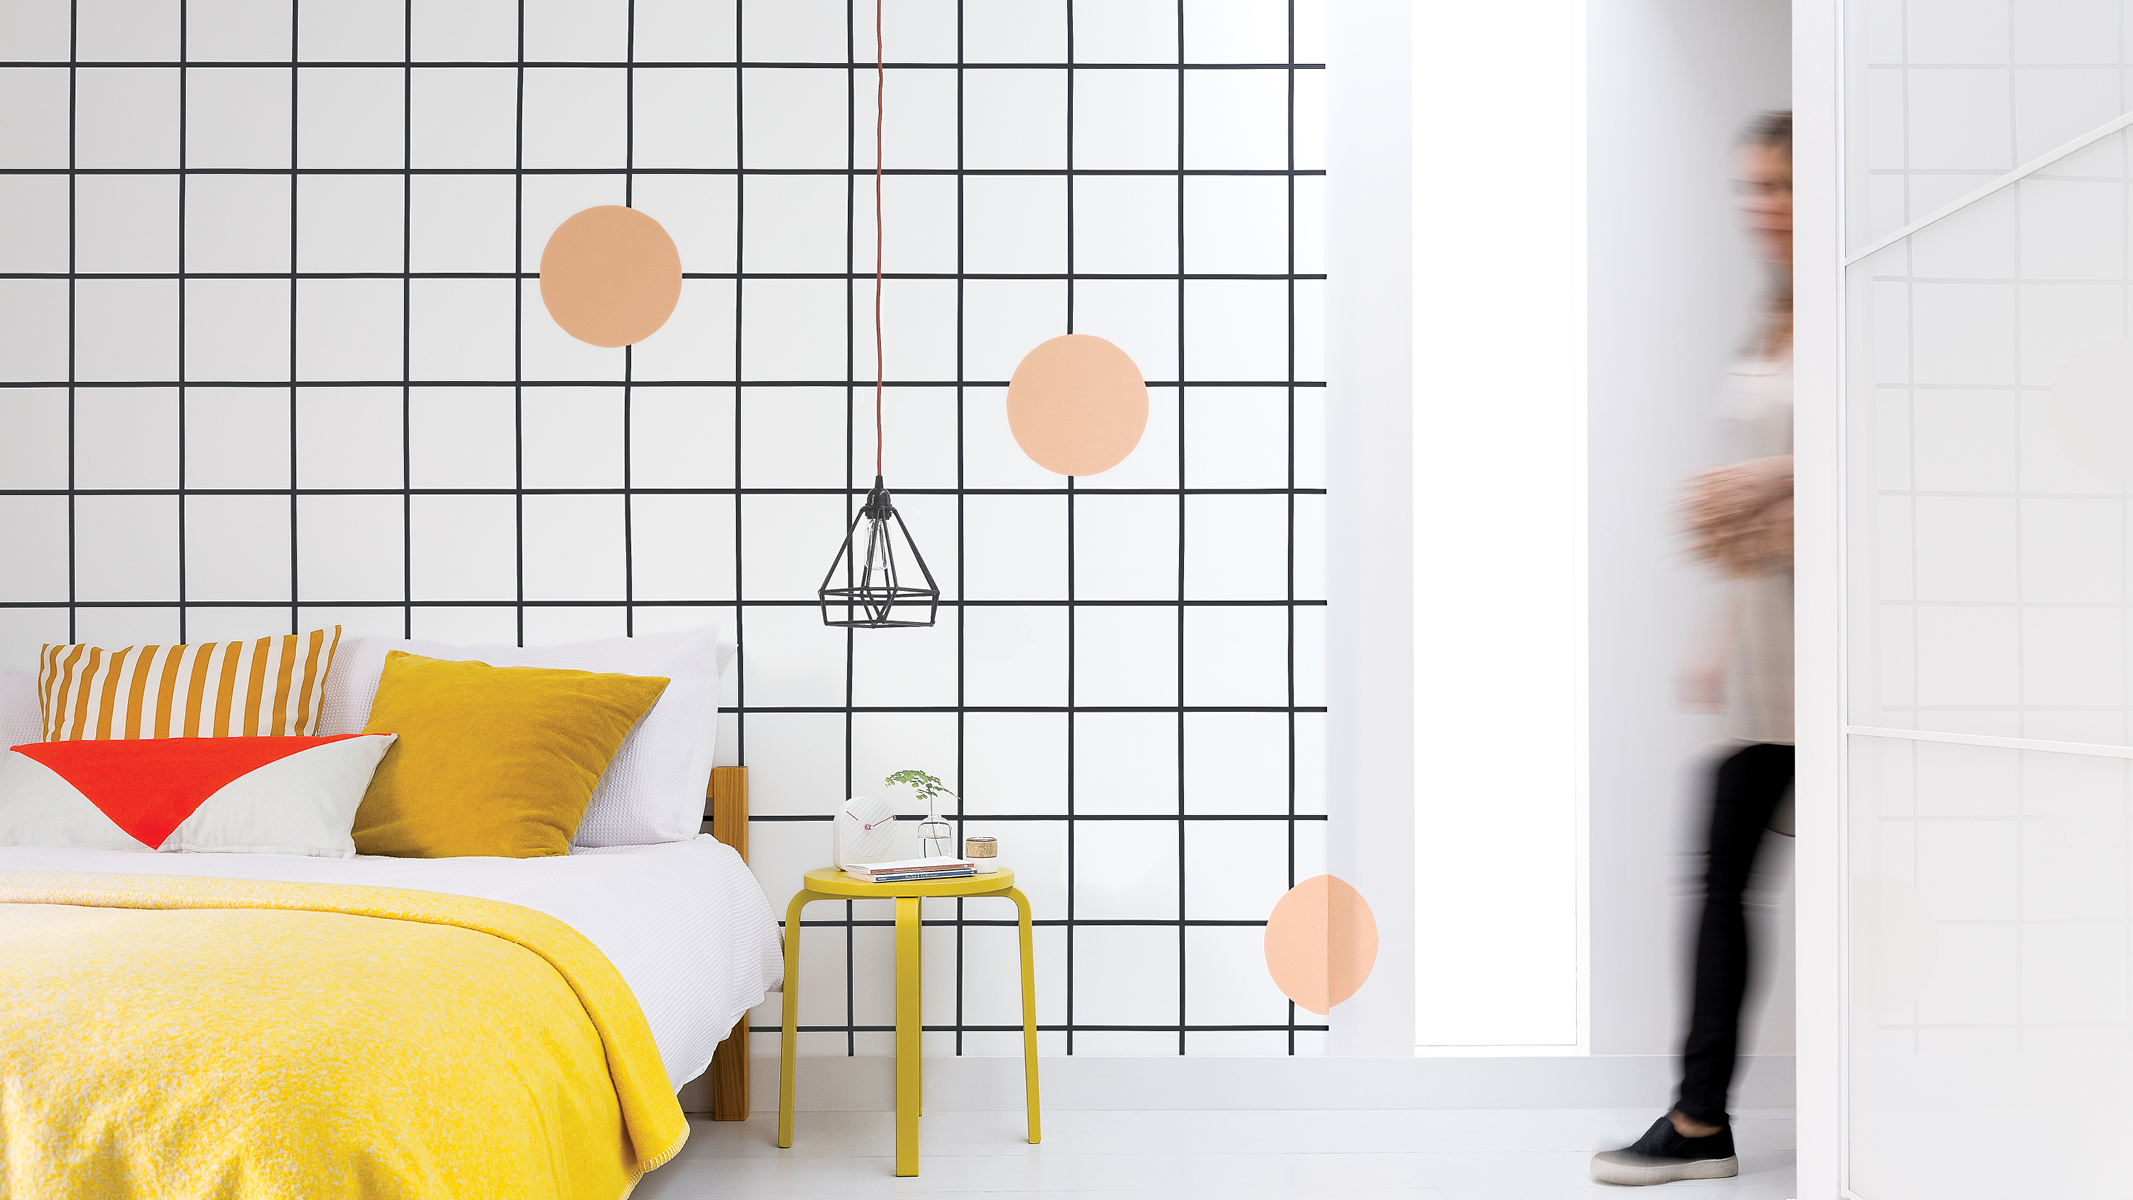 For a contemporary decorating idea with an edgy vibe, you can't go wrong with a monochrome grid.